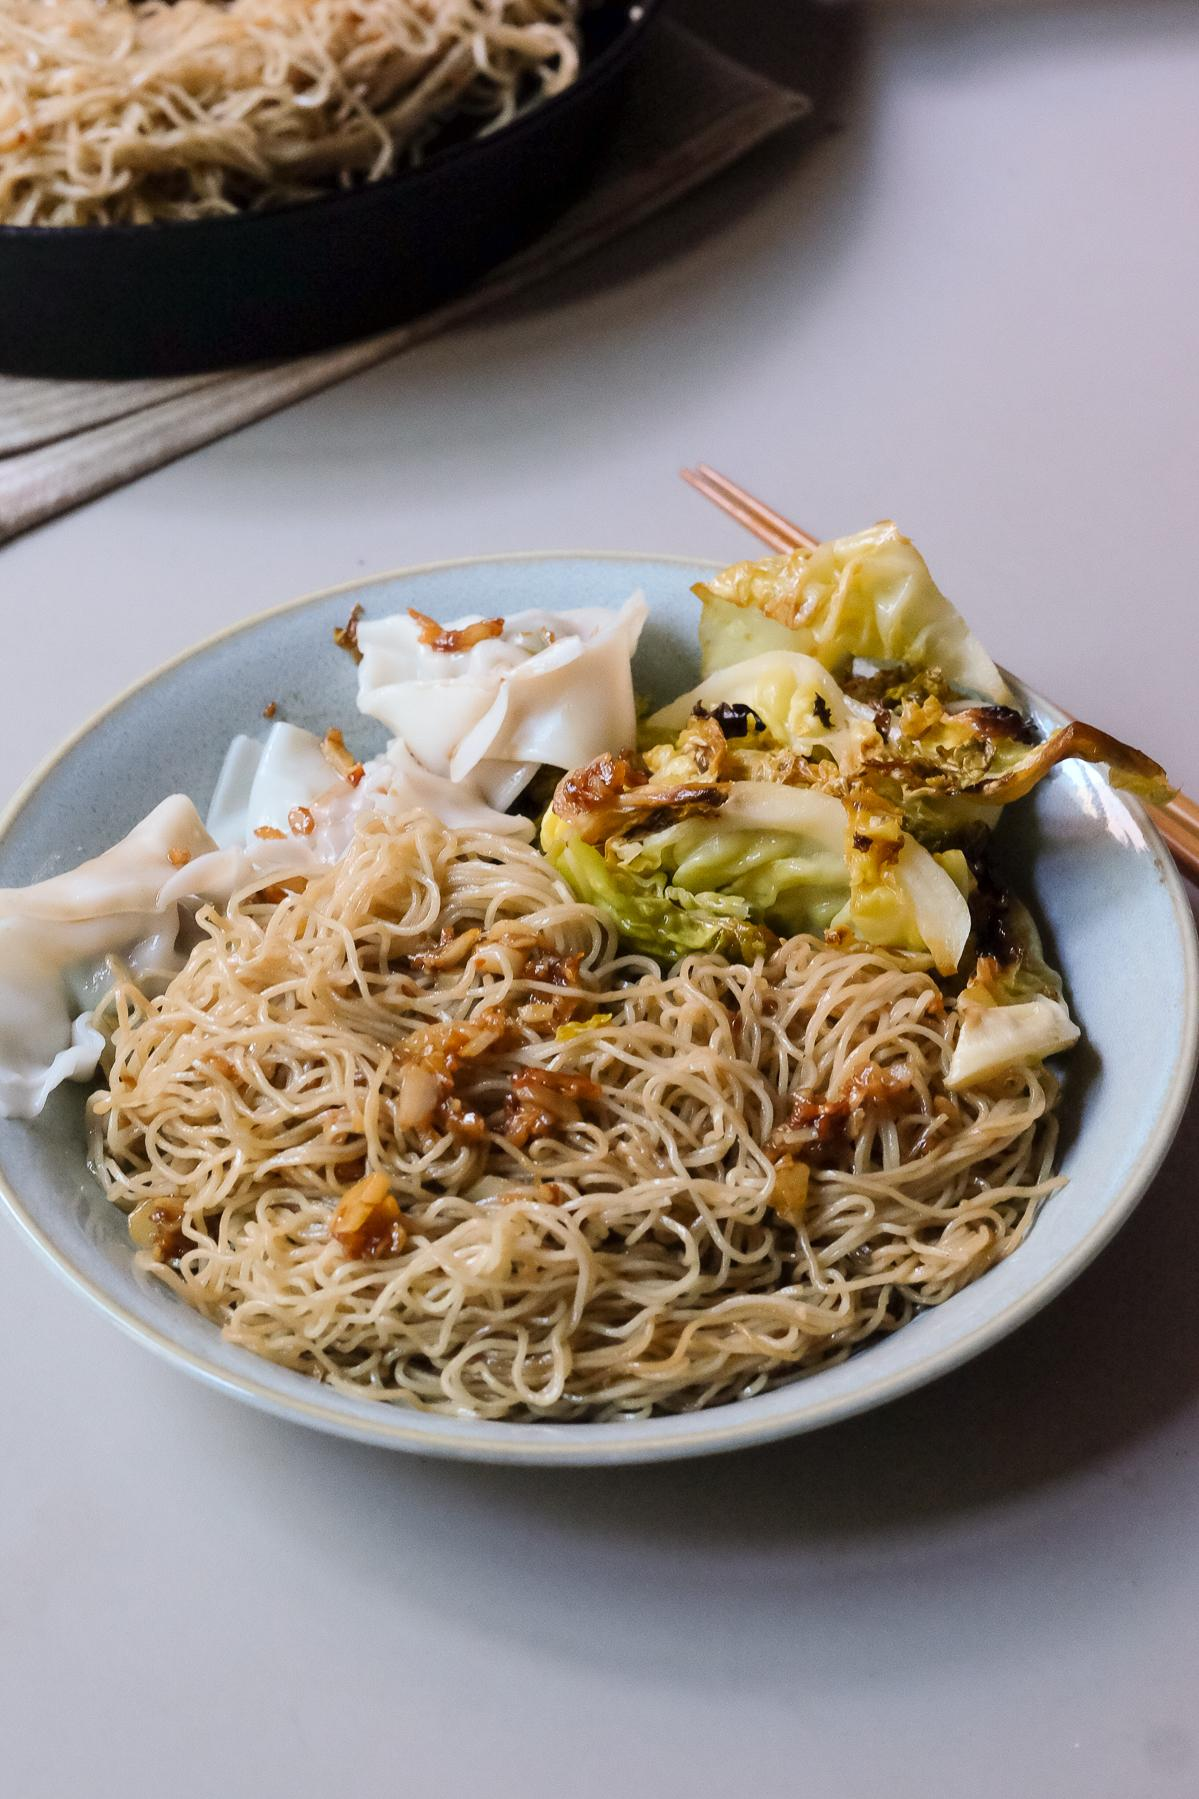 A plate of Gon Lo Mein with boiled wontons and roasted cabbage, ready to eat.